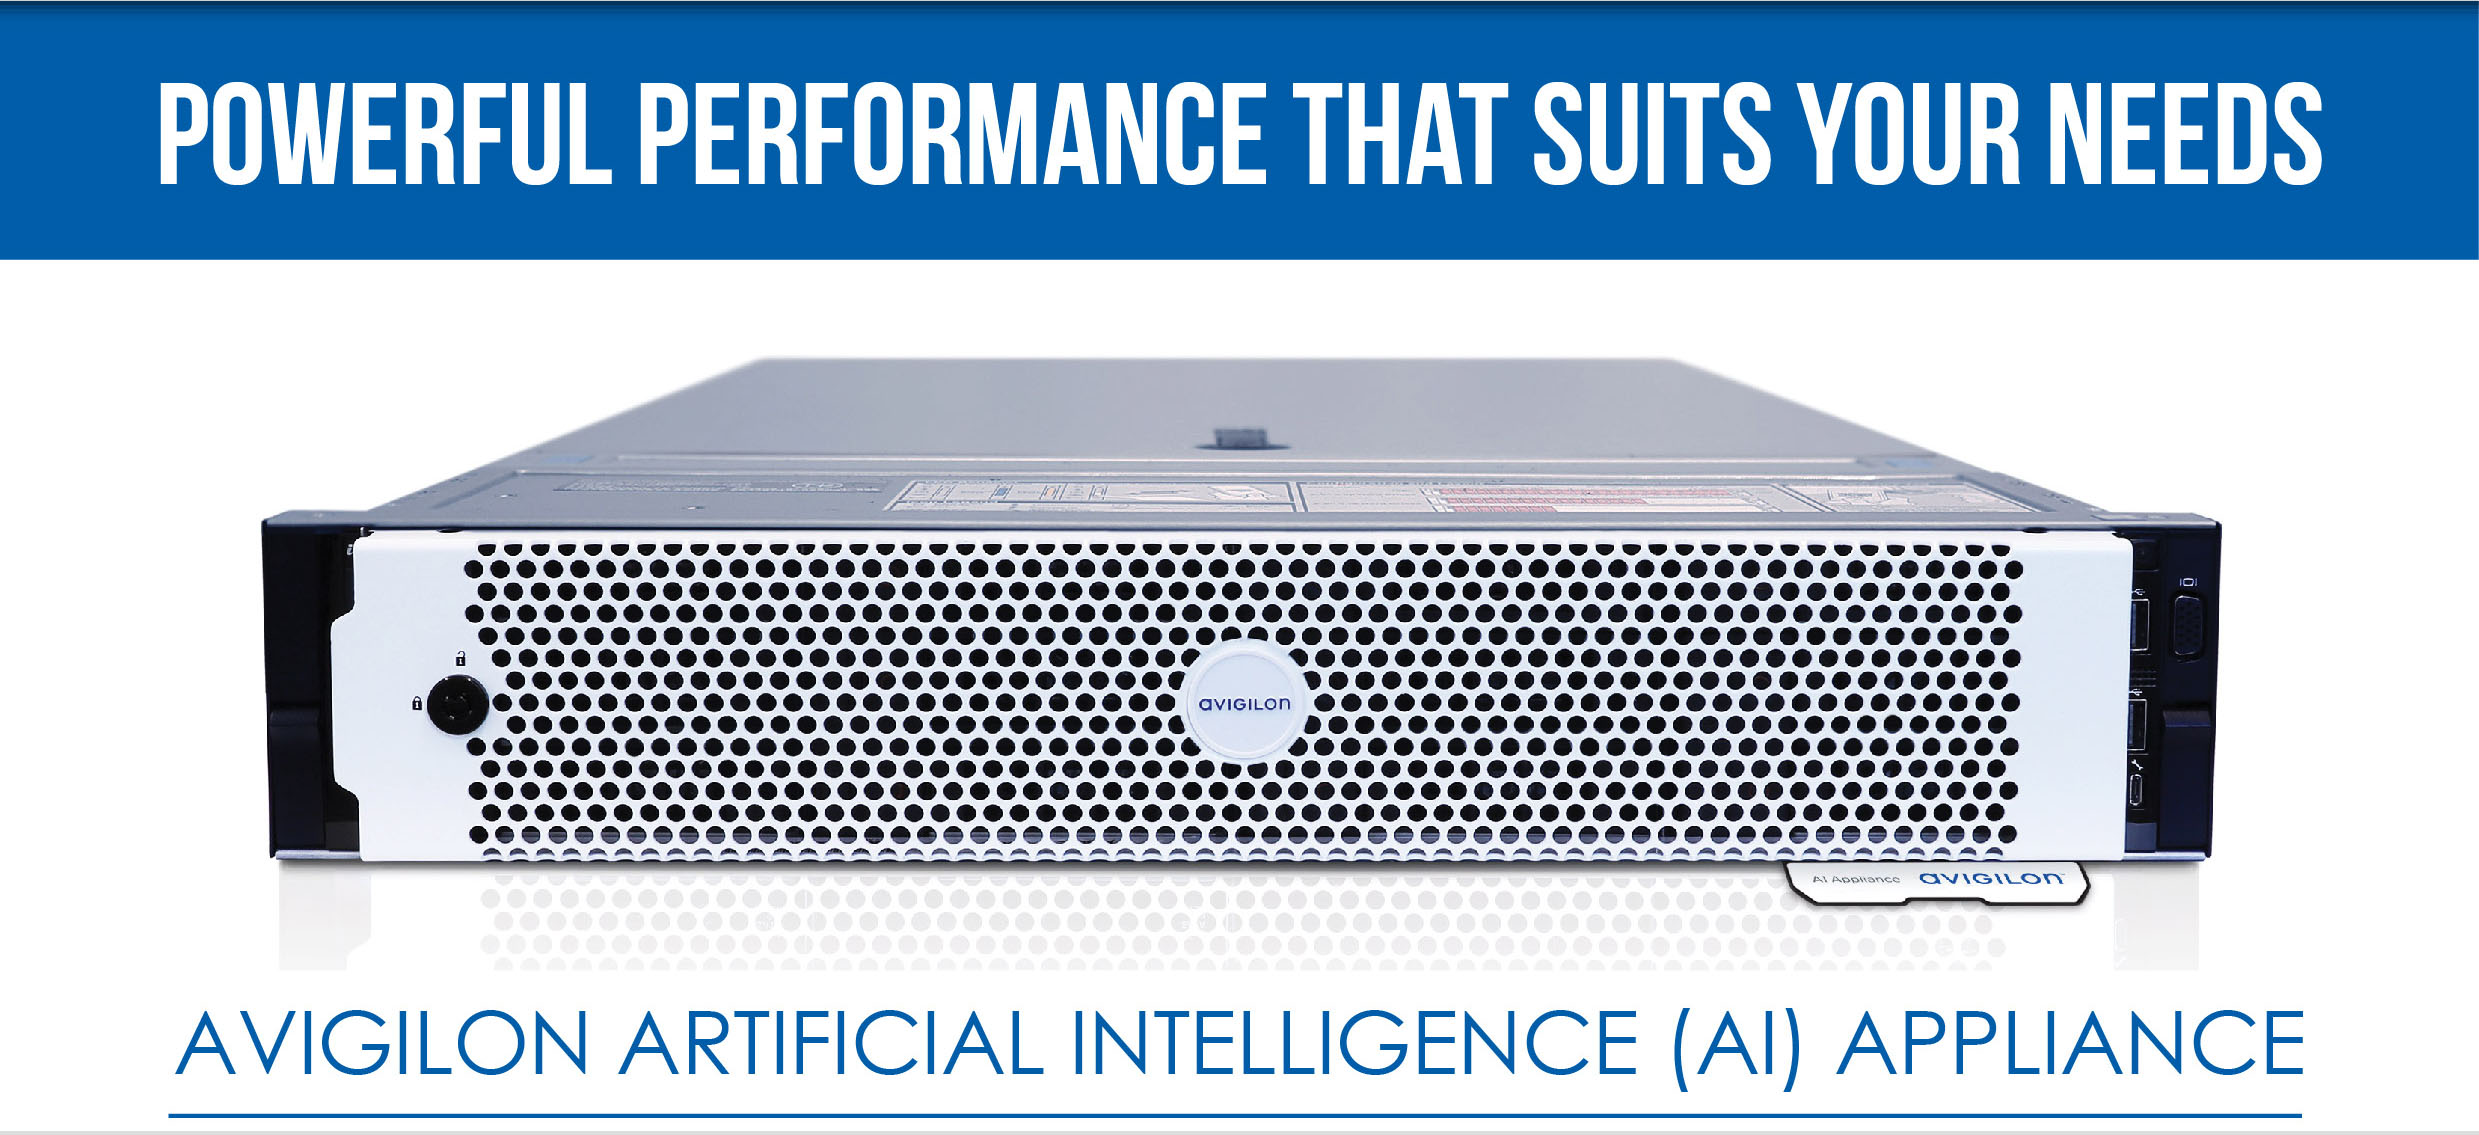 Avigilon_Newsletter_AI_Appliance_October-Header_web.jpg